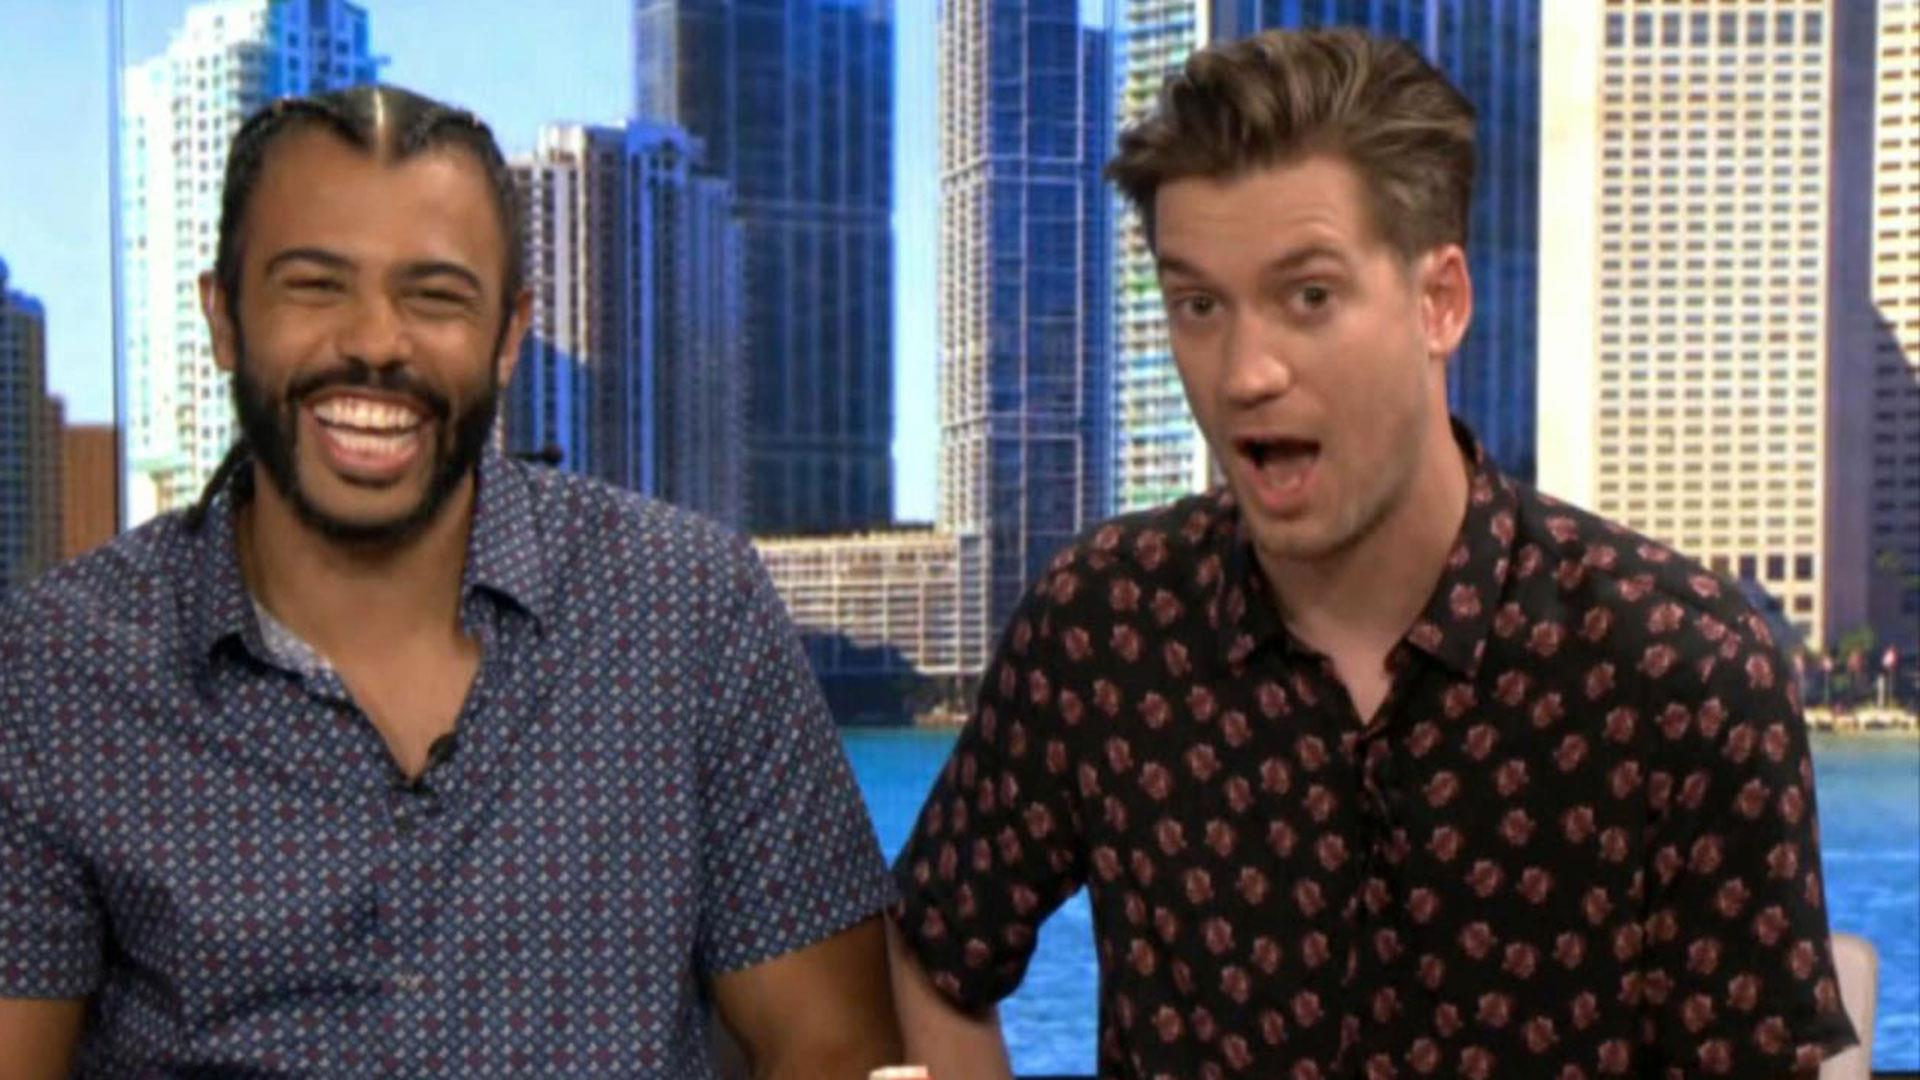 Joy Reid interviews co-writers and stars of new movie 'Blindspotting'